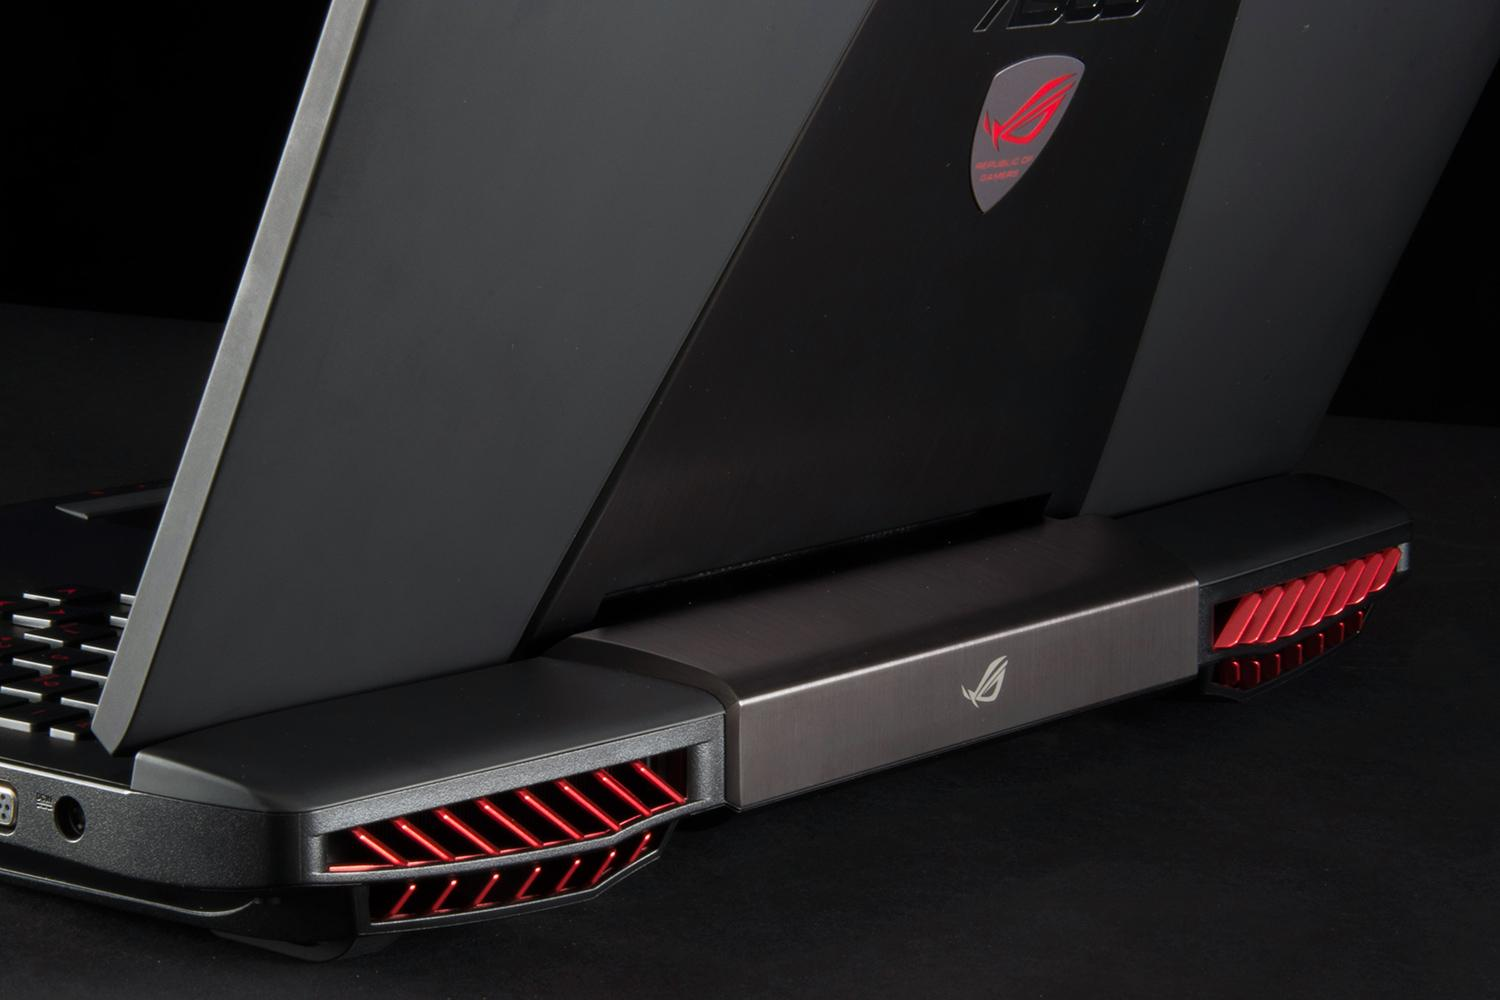 Asus ROG G751JY DH71 review | Digital Trends: digitaltrends.com/laptop-reviews/asus-rog-g751jy-dh71-review...